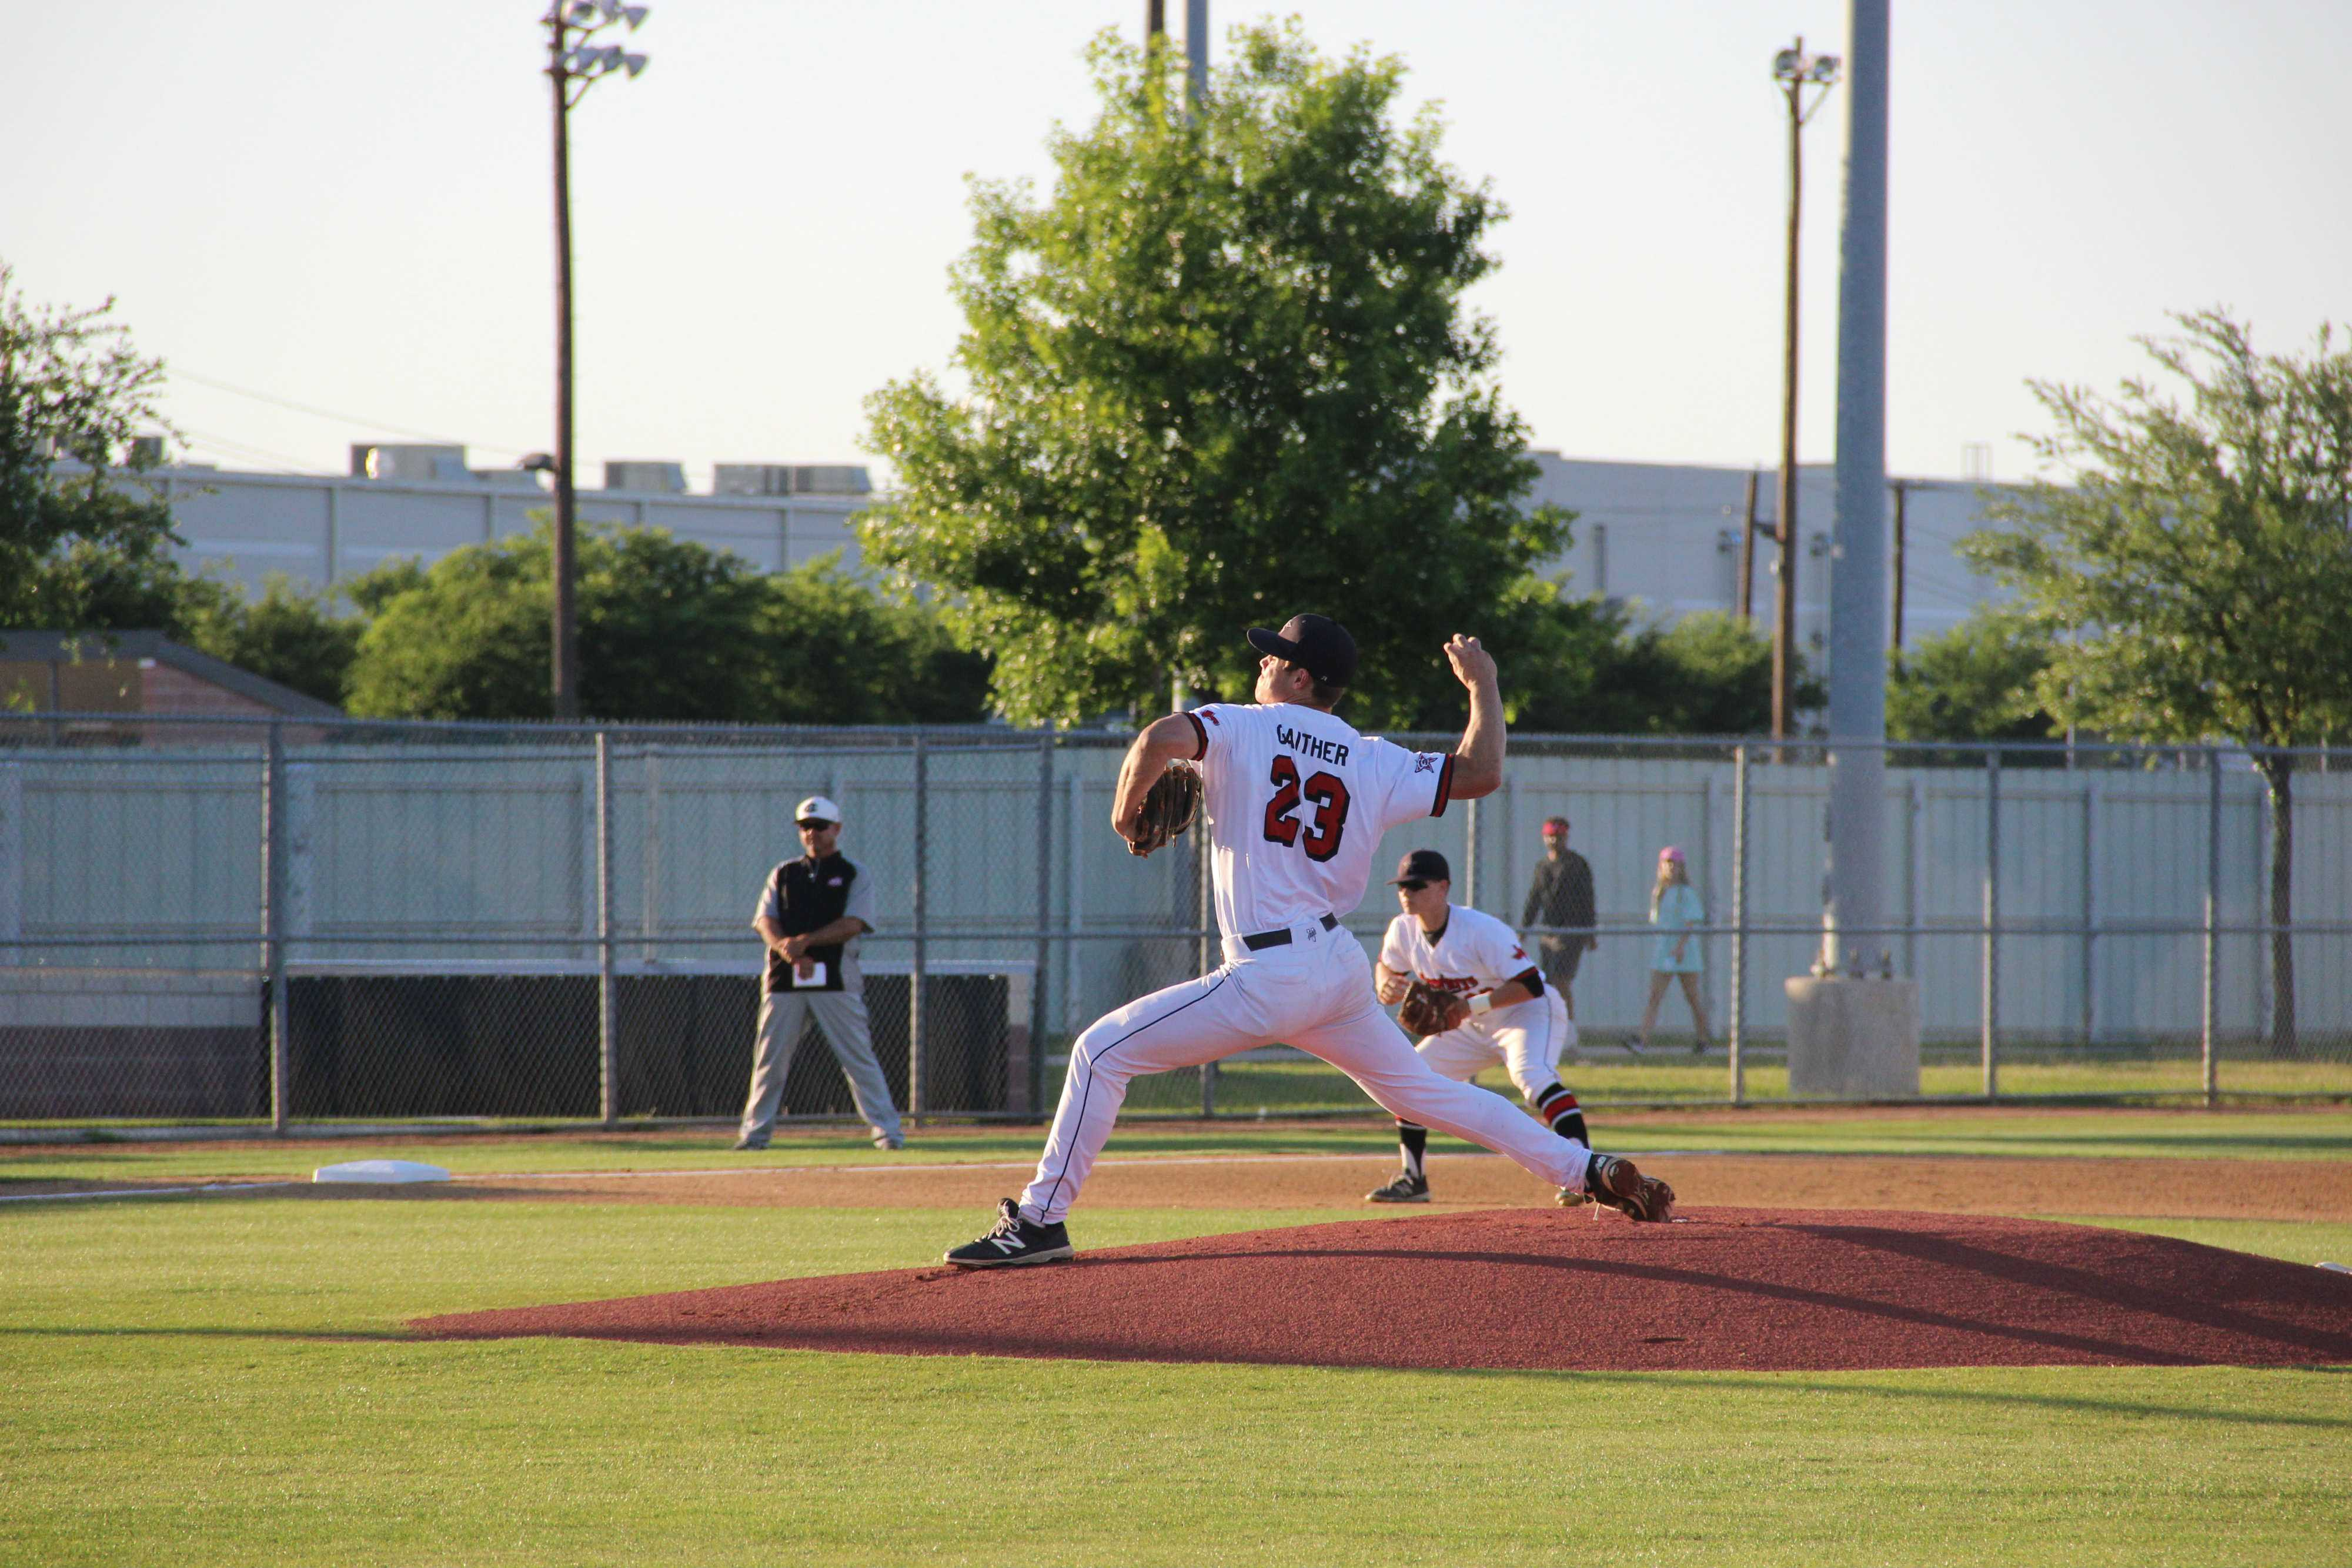 Senior pitcher Ray Gathier delivers a pitch in the 4th inning. Gathier had 11 strikeouts on the night. Photo by Ayoung Jo.